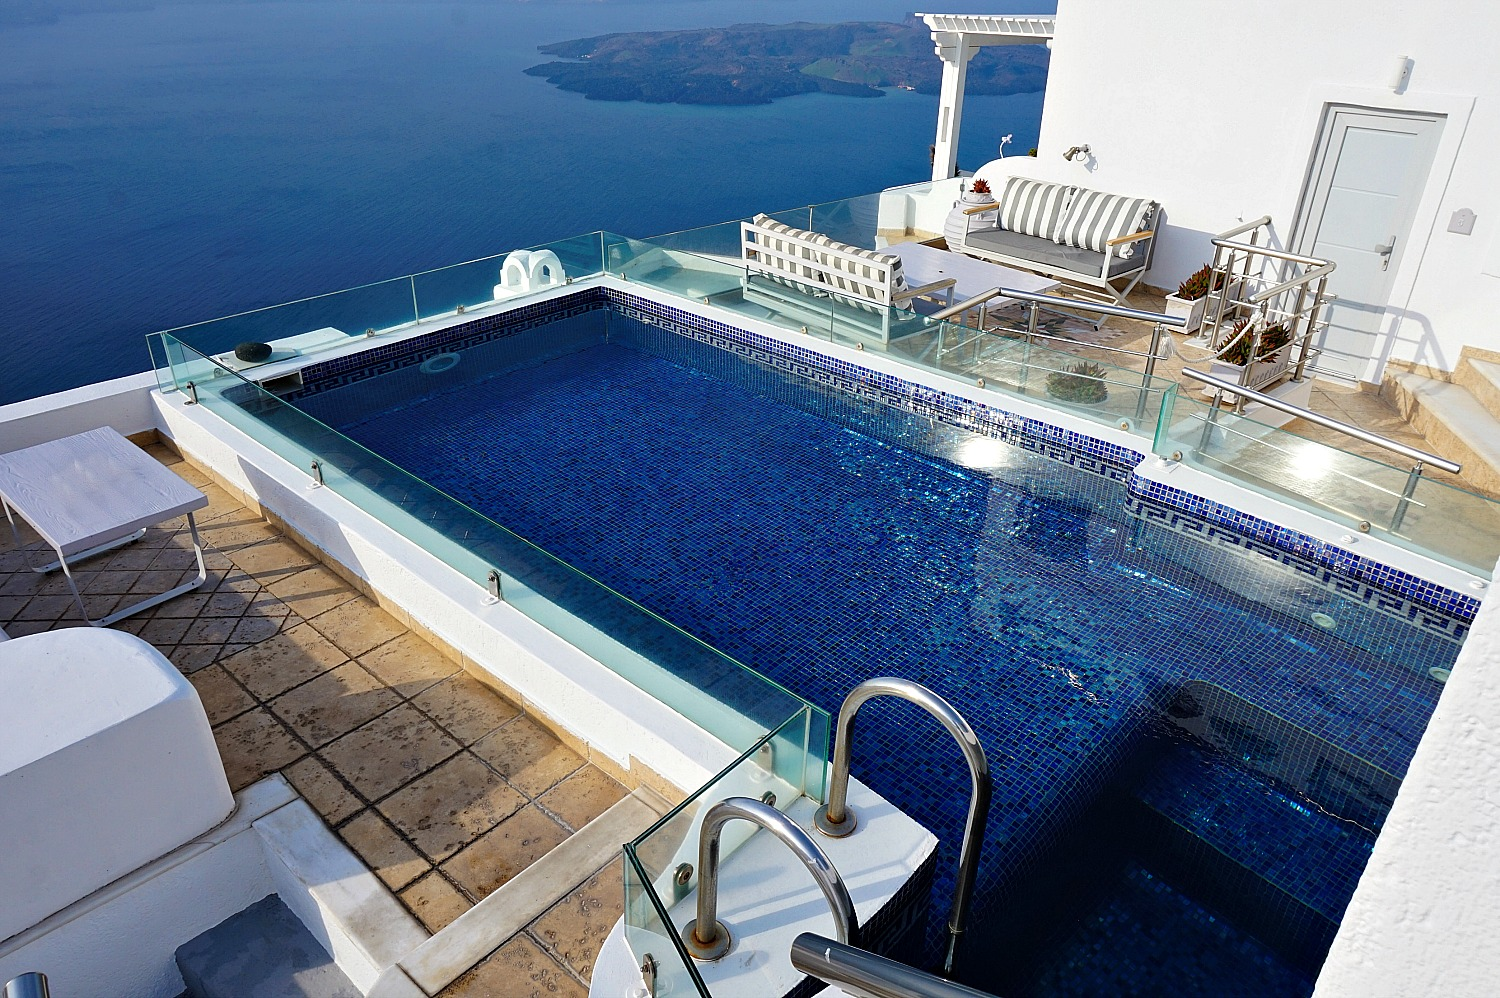 Infinity pool at Nefeli Homes Santorini.